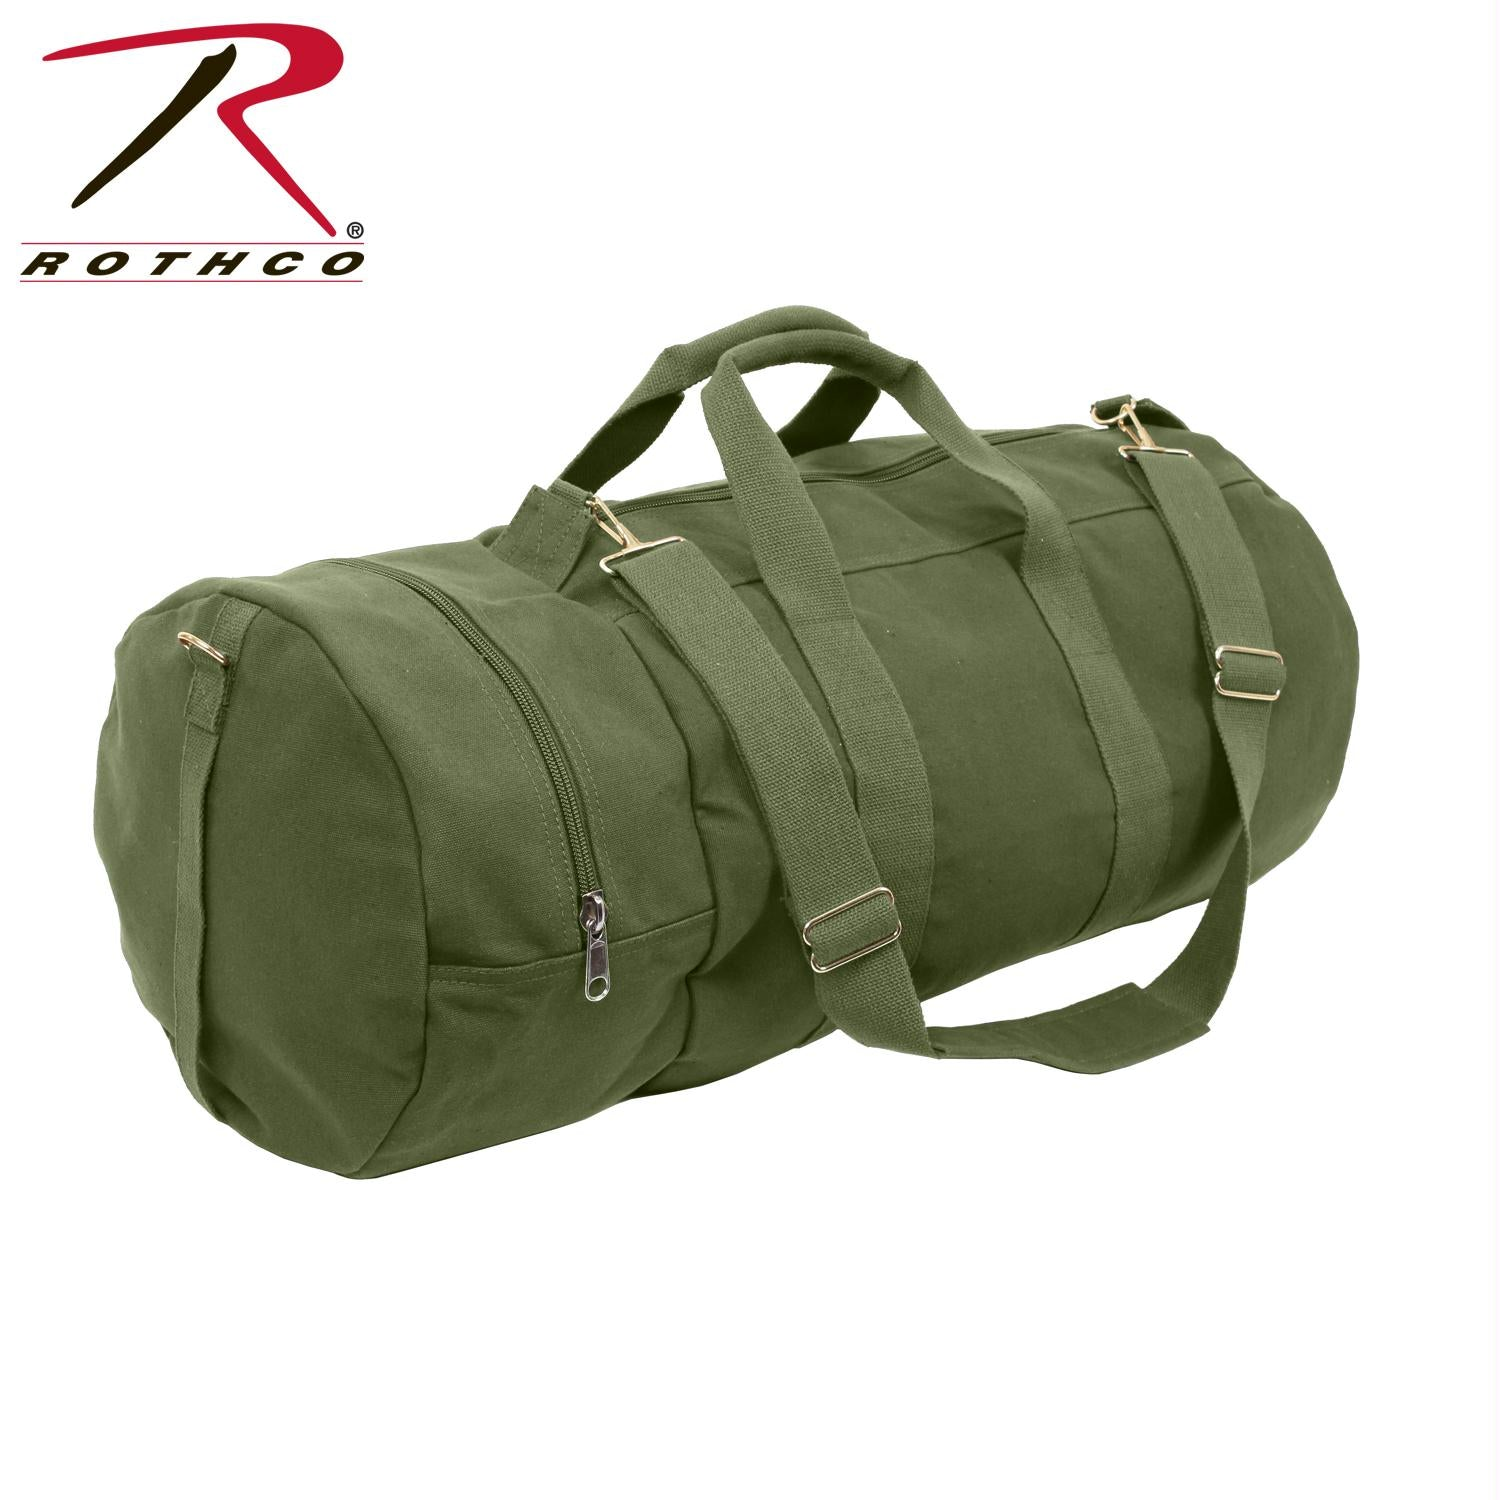 Rothco Canvas Double-Ender Sports Bag - Olive Drab